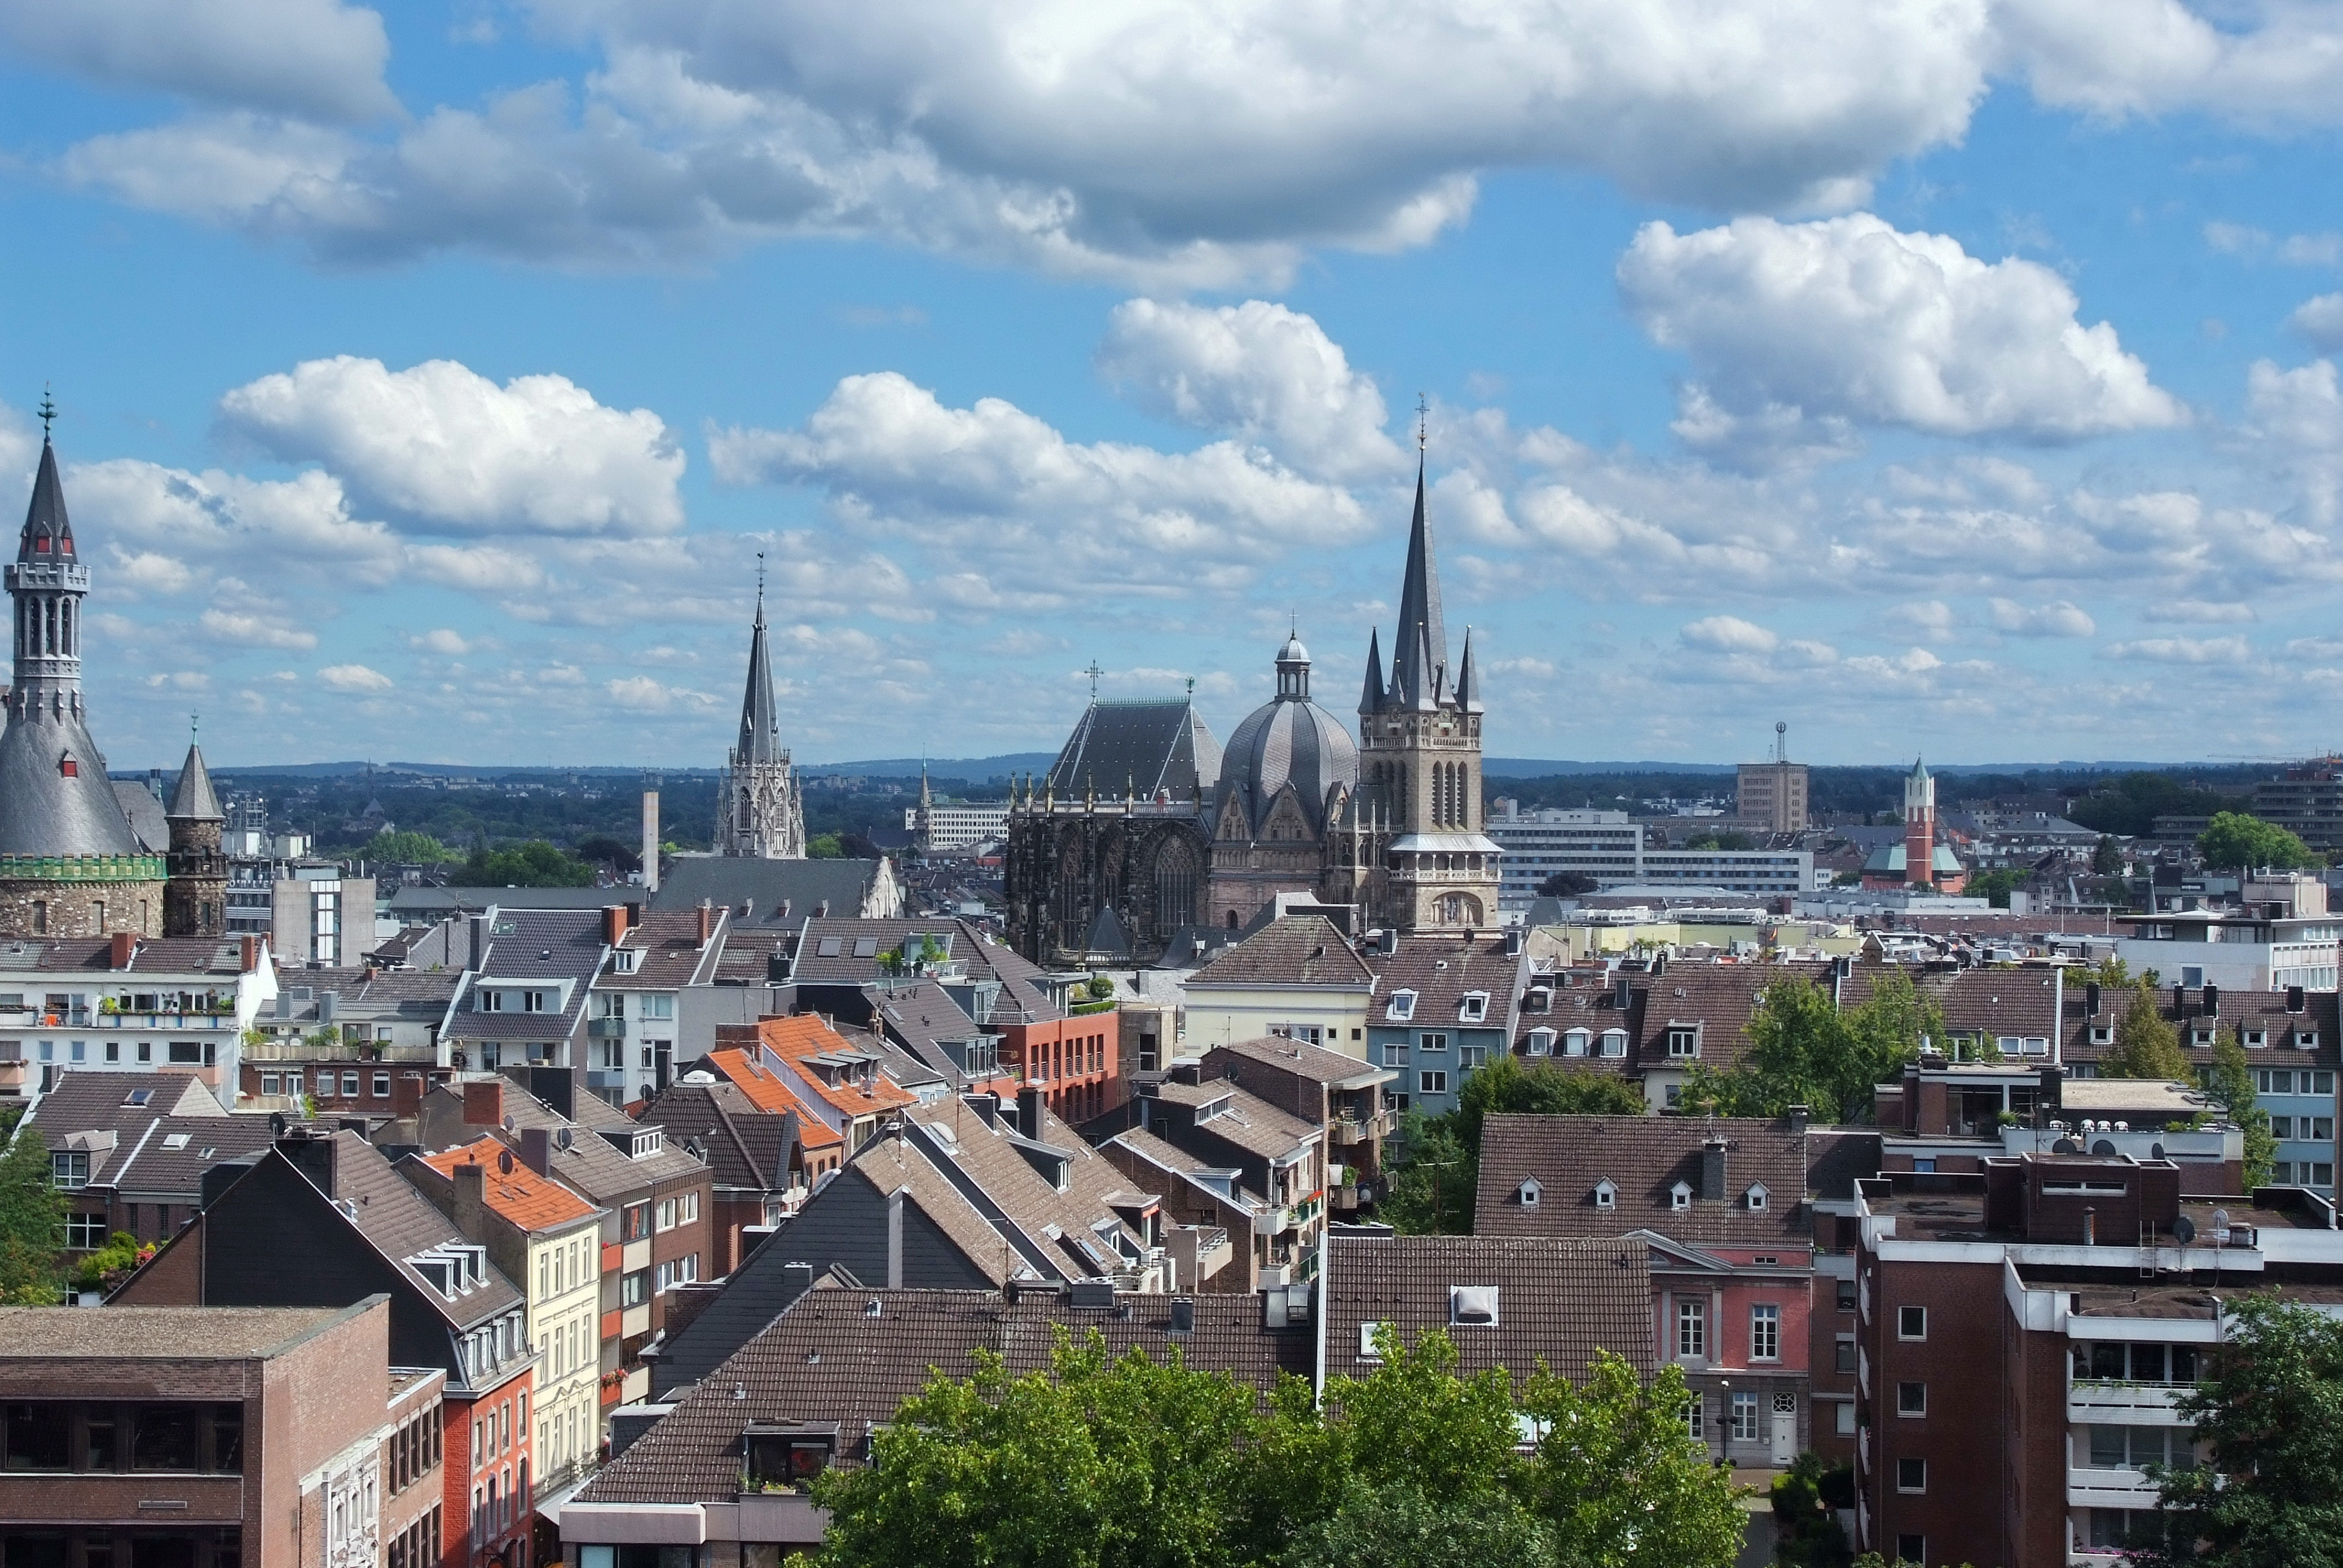 Charlemagne's Aachen: Culture, Responsibility, and Legacy